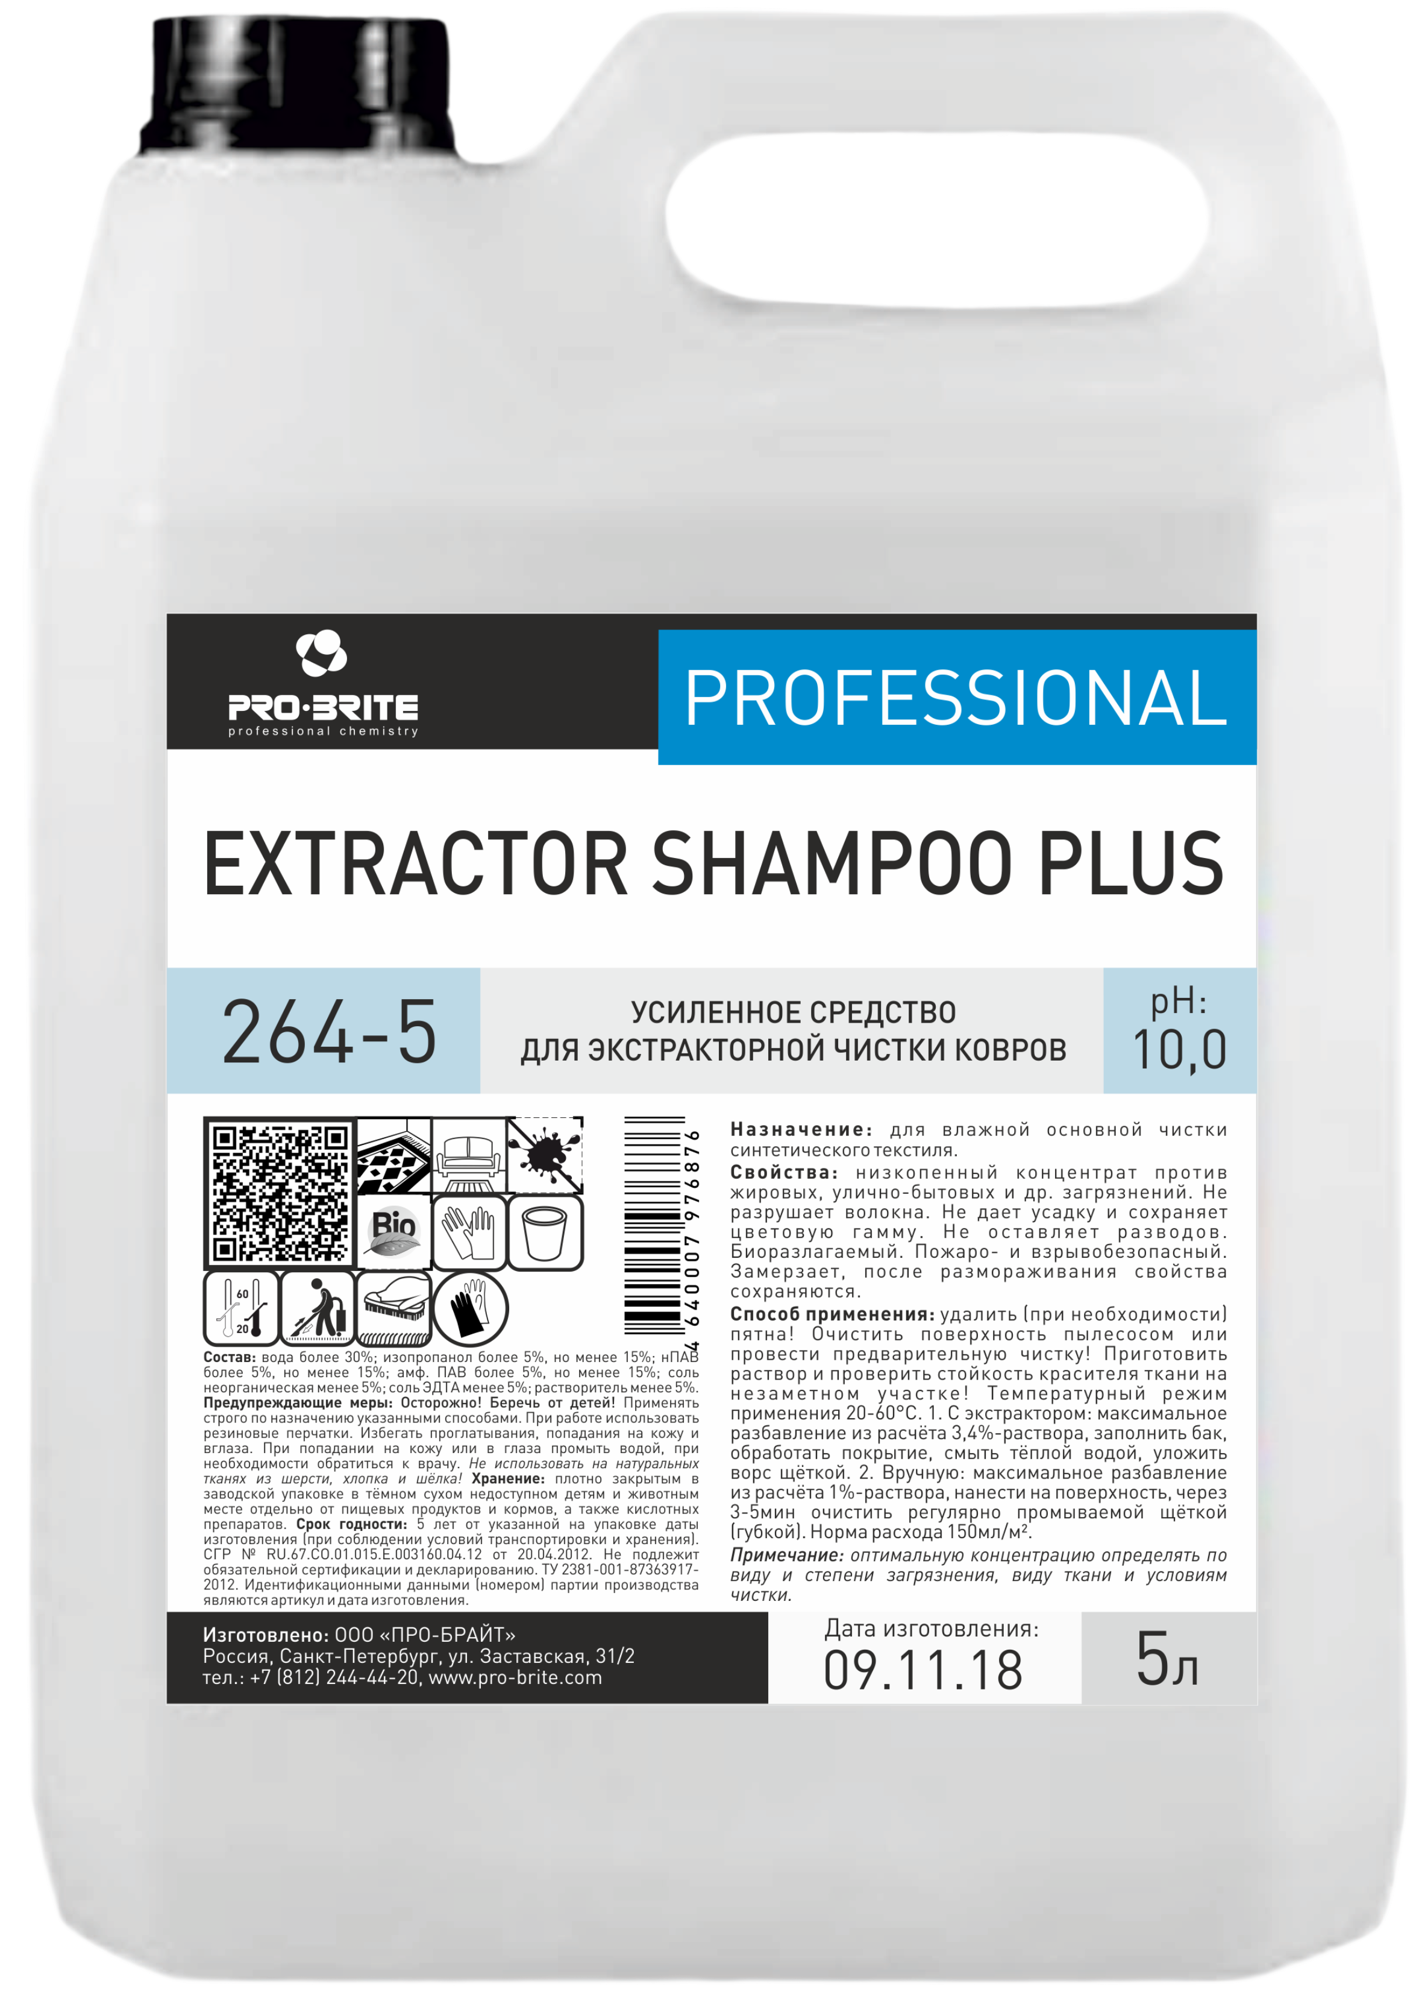 EXTRACTOR SHAMPOO PLUS